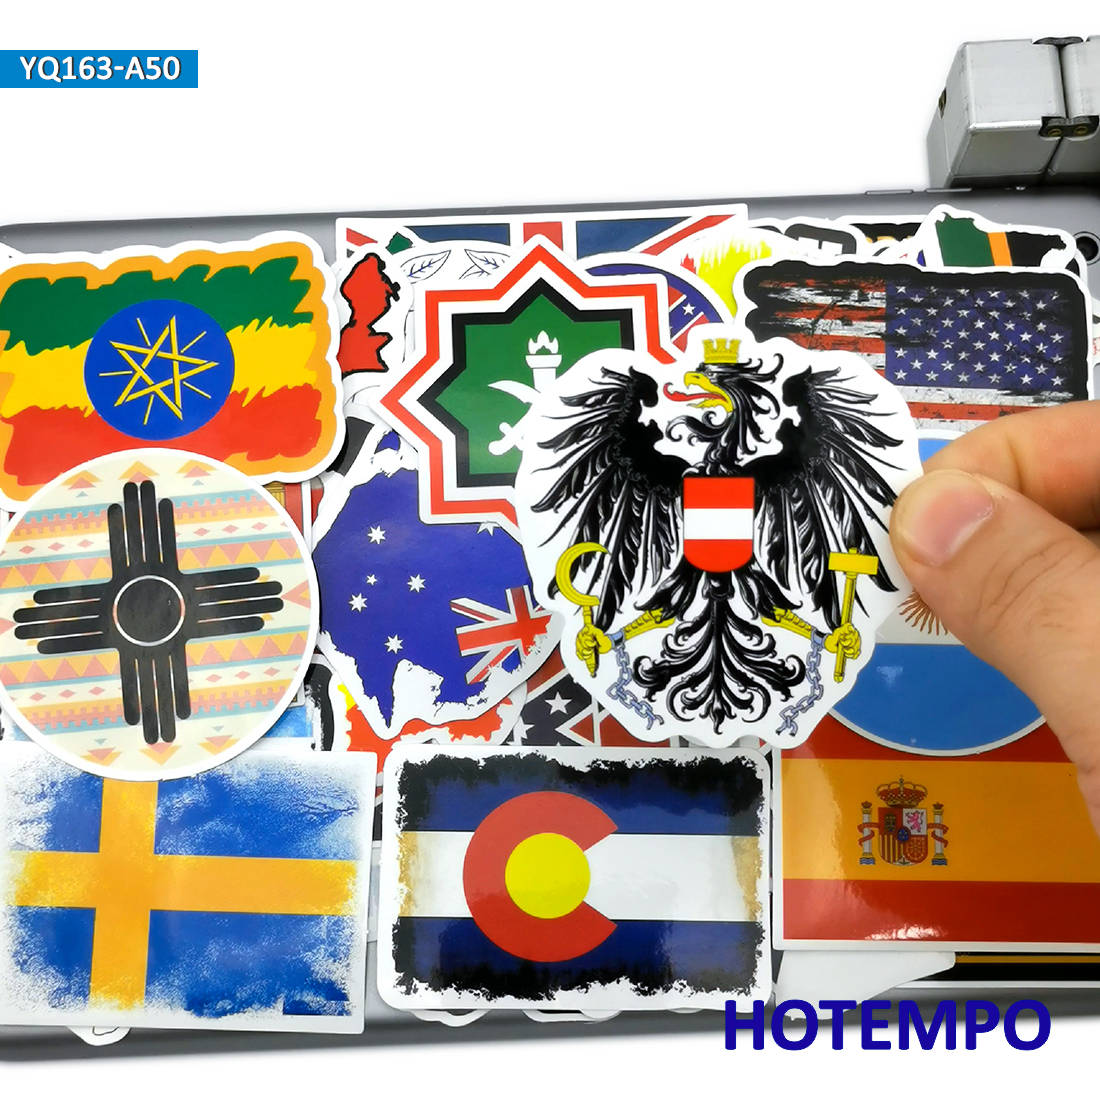 50pcs National Flags Travel Stickers Map Style Toys For Children Kids Mobile Phone Laptop Luggage Case Skateboard Bike Stickers